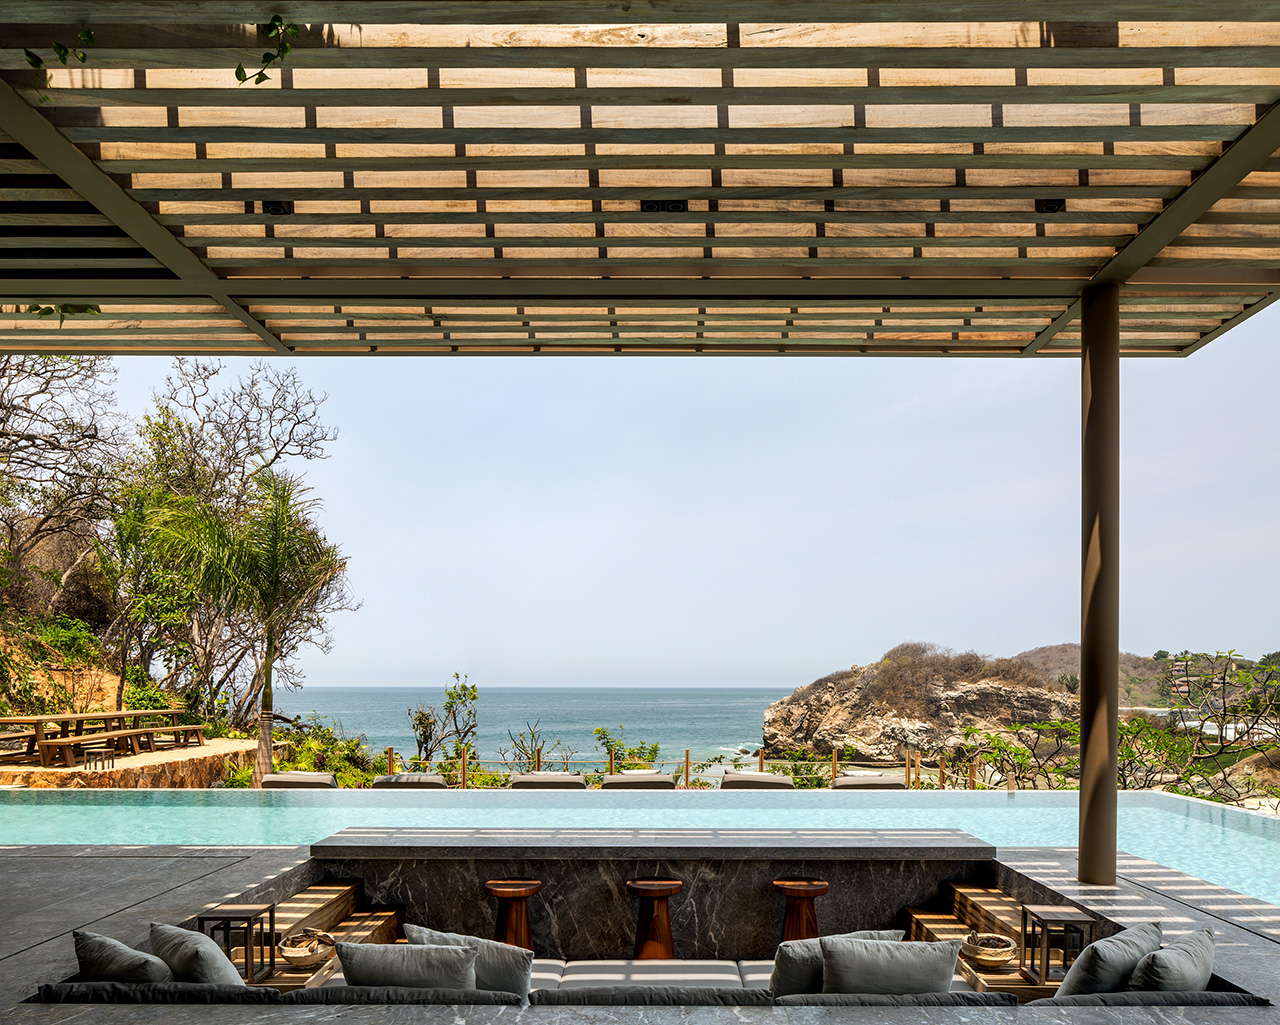 A sunken social space looking out to the infinity pool and beyond to the sea.